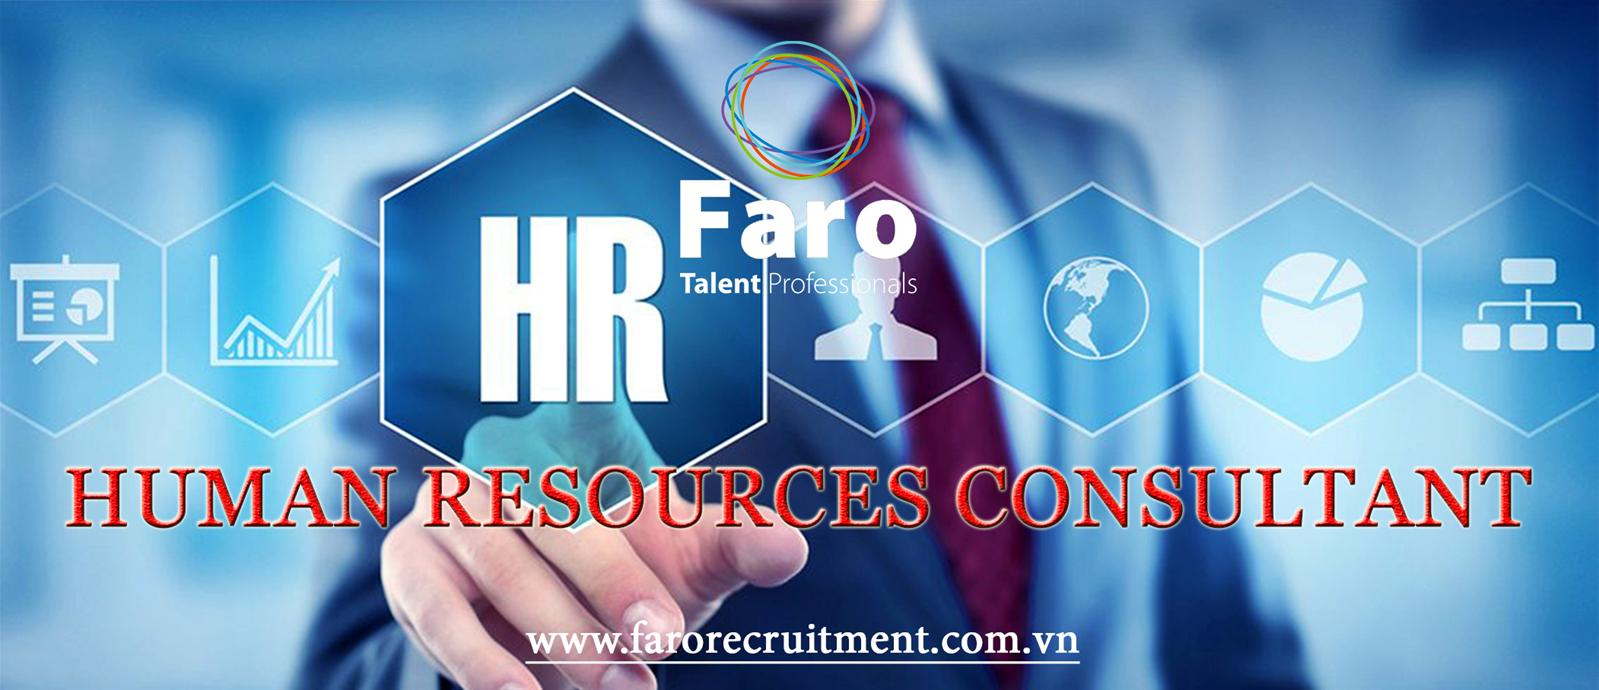 Job Opportunity in Faro Vietnam - HR Consultant